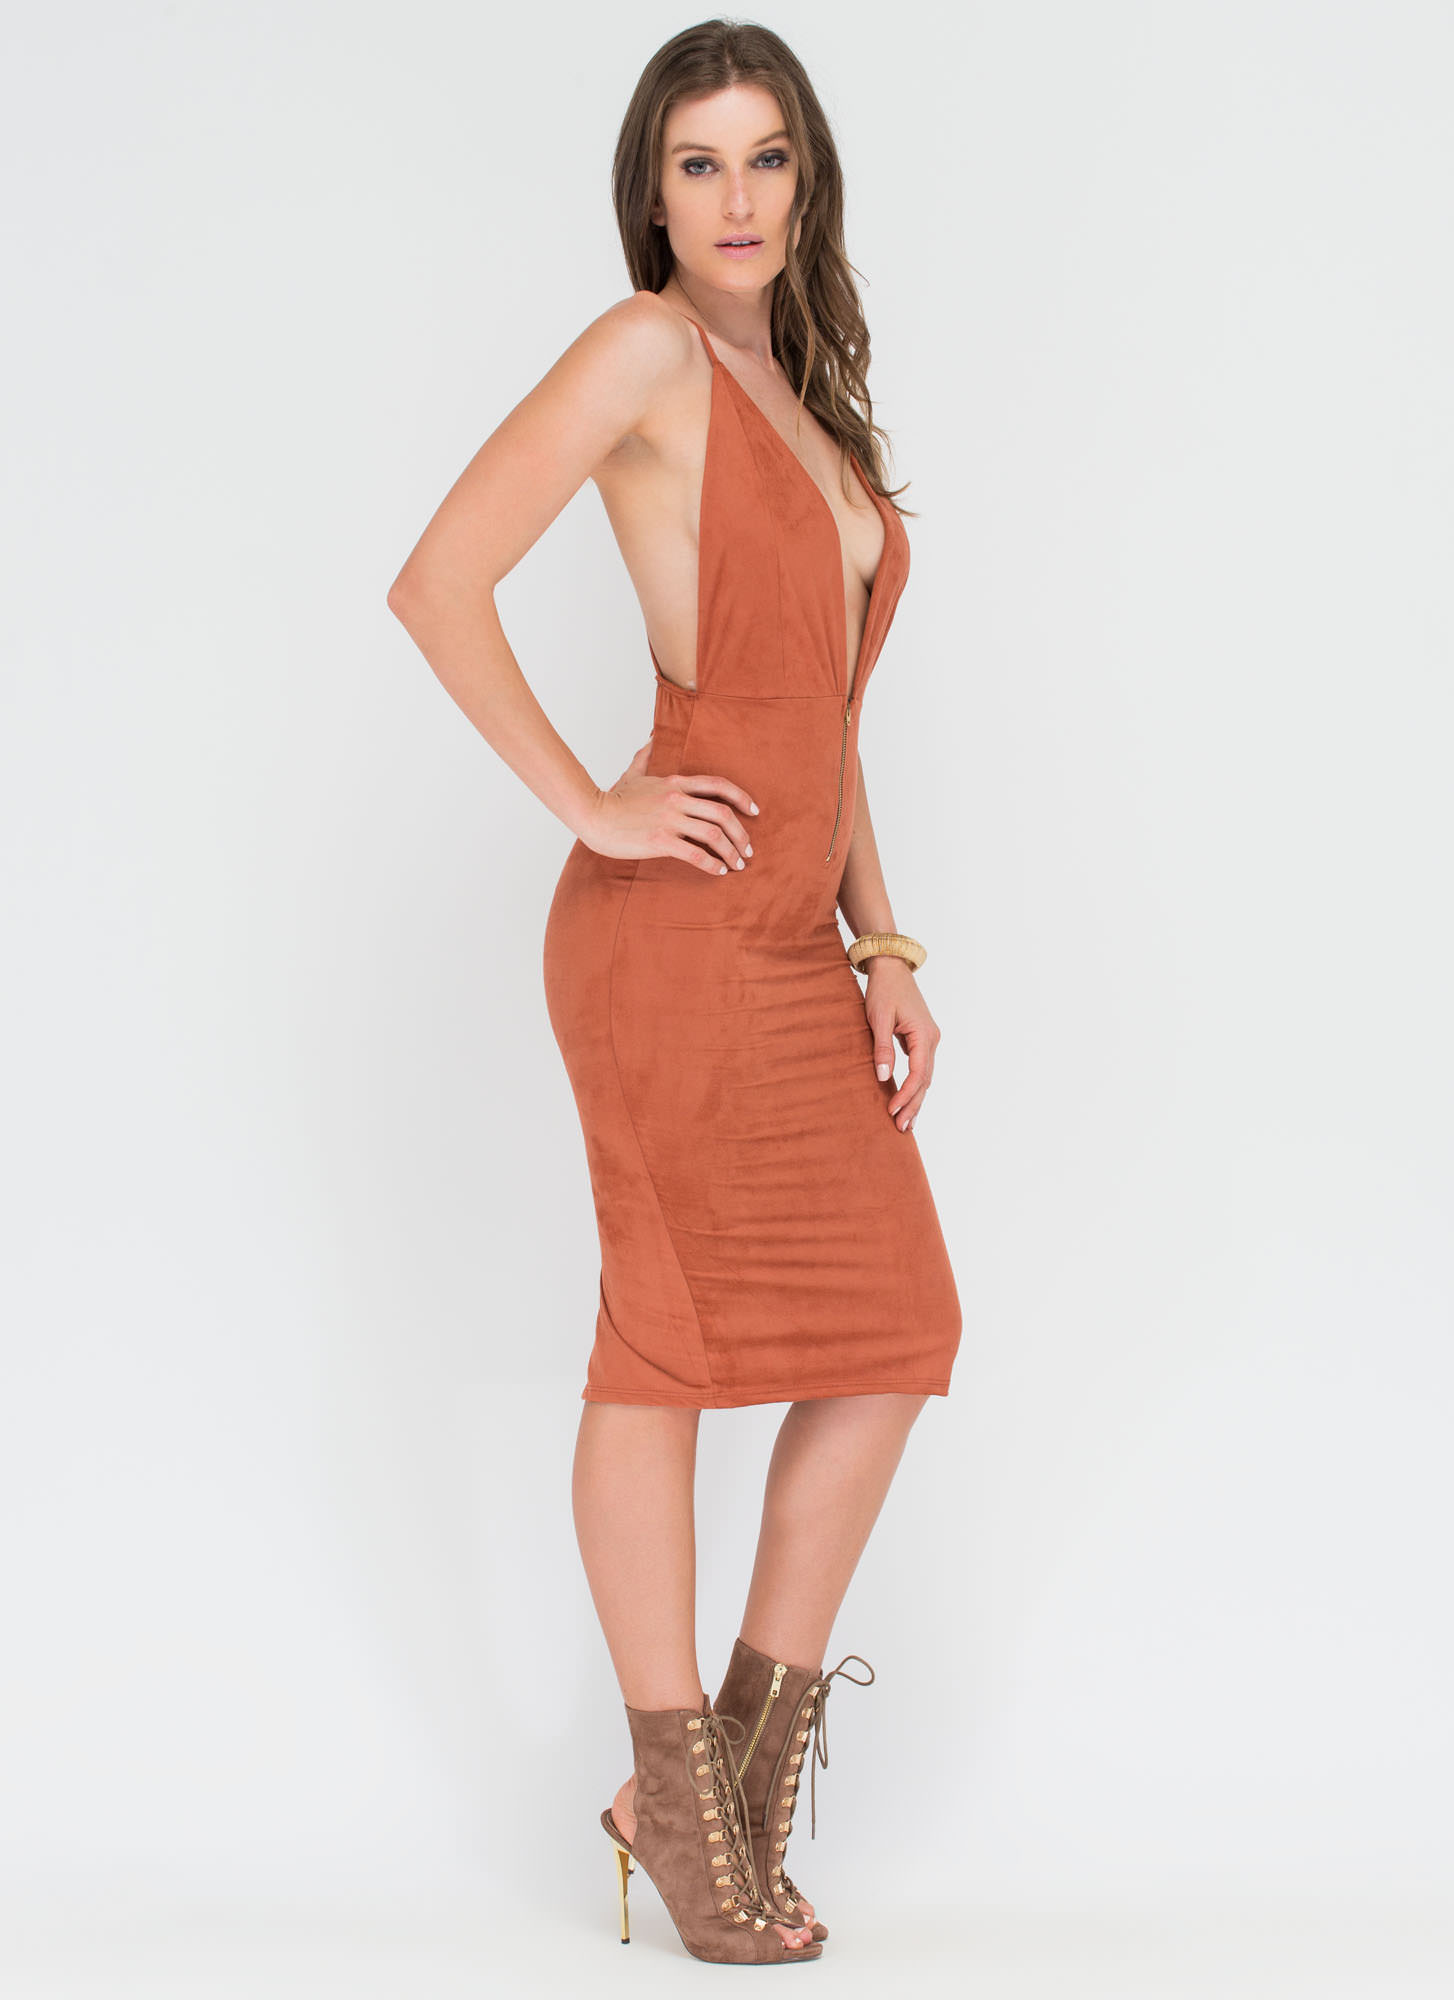 Take Notice Plunging Faux Suede Dress RUST